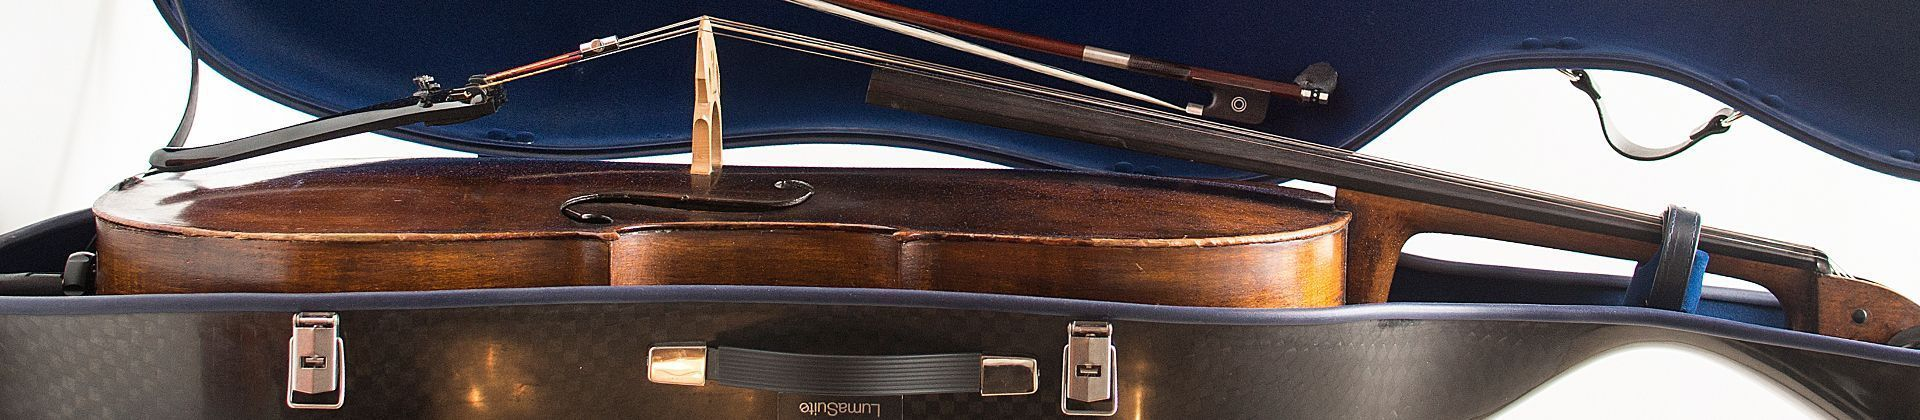 luxury squared carbon cello case inside detail